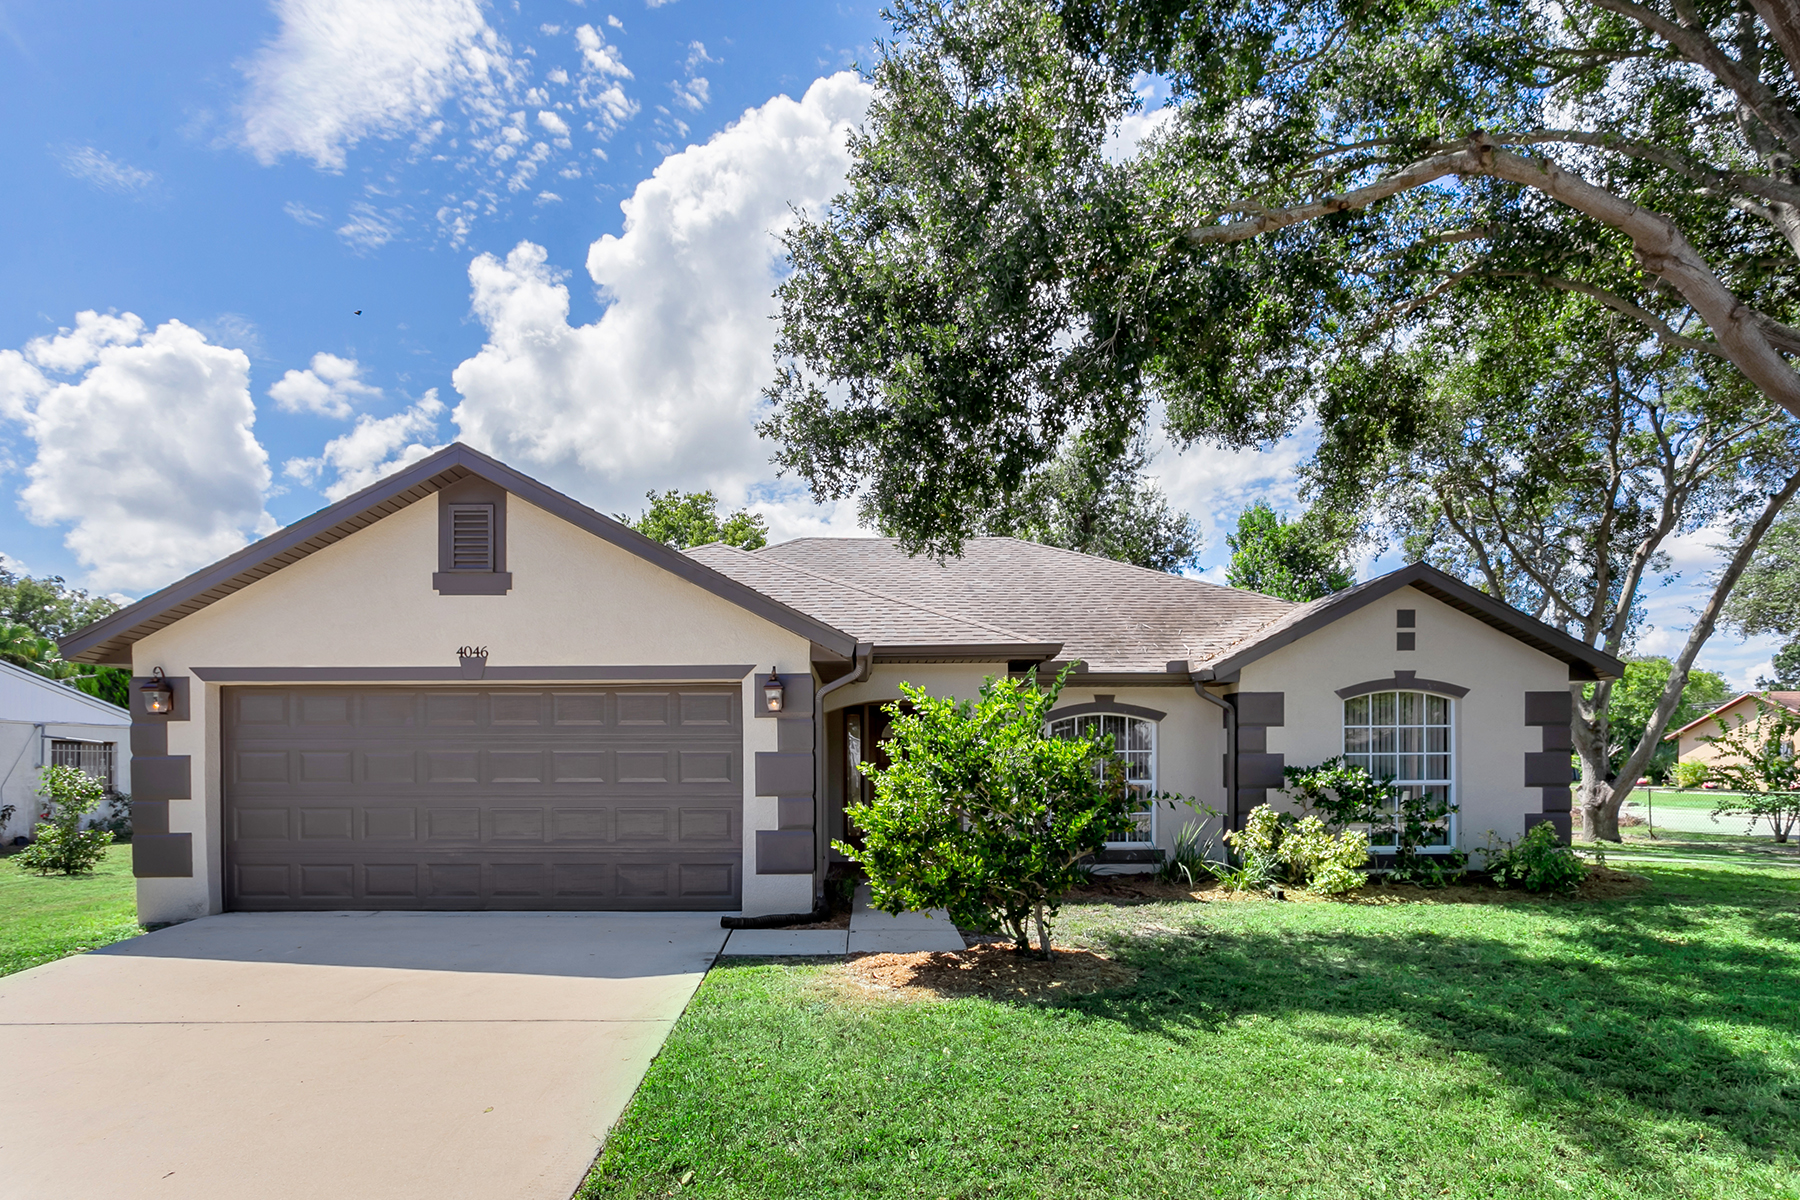 Single Family Homes for Sale at TITUSVILLE 4046 David Dr, Titusville, Florida 32780 United States